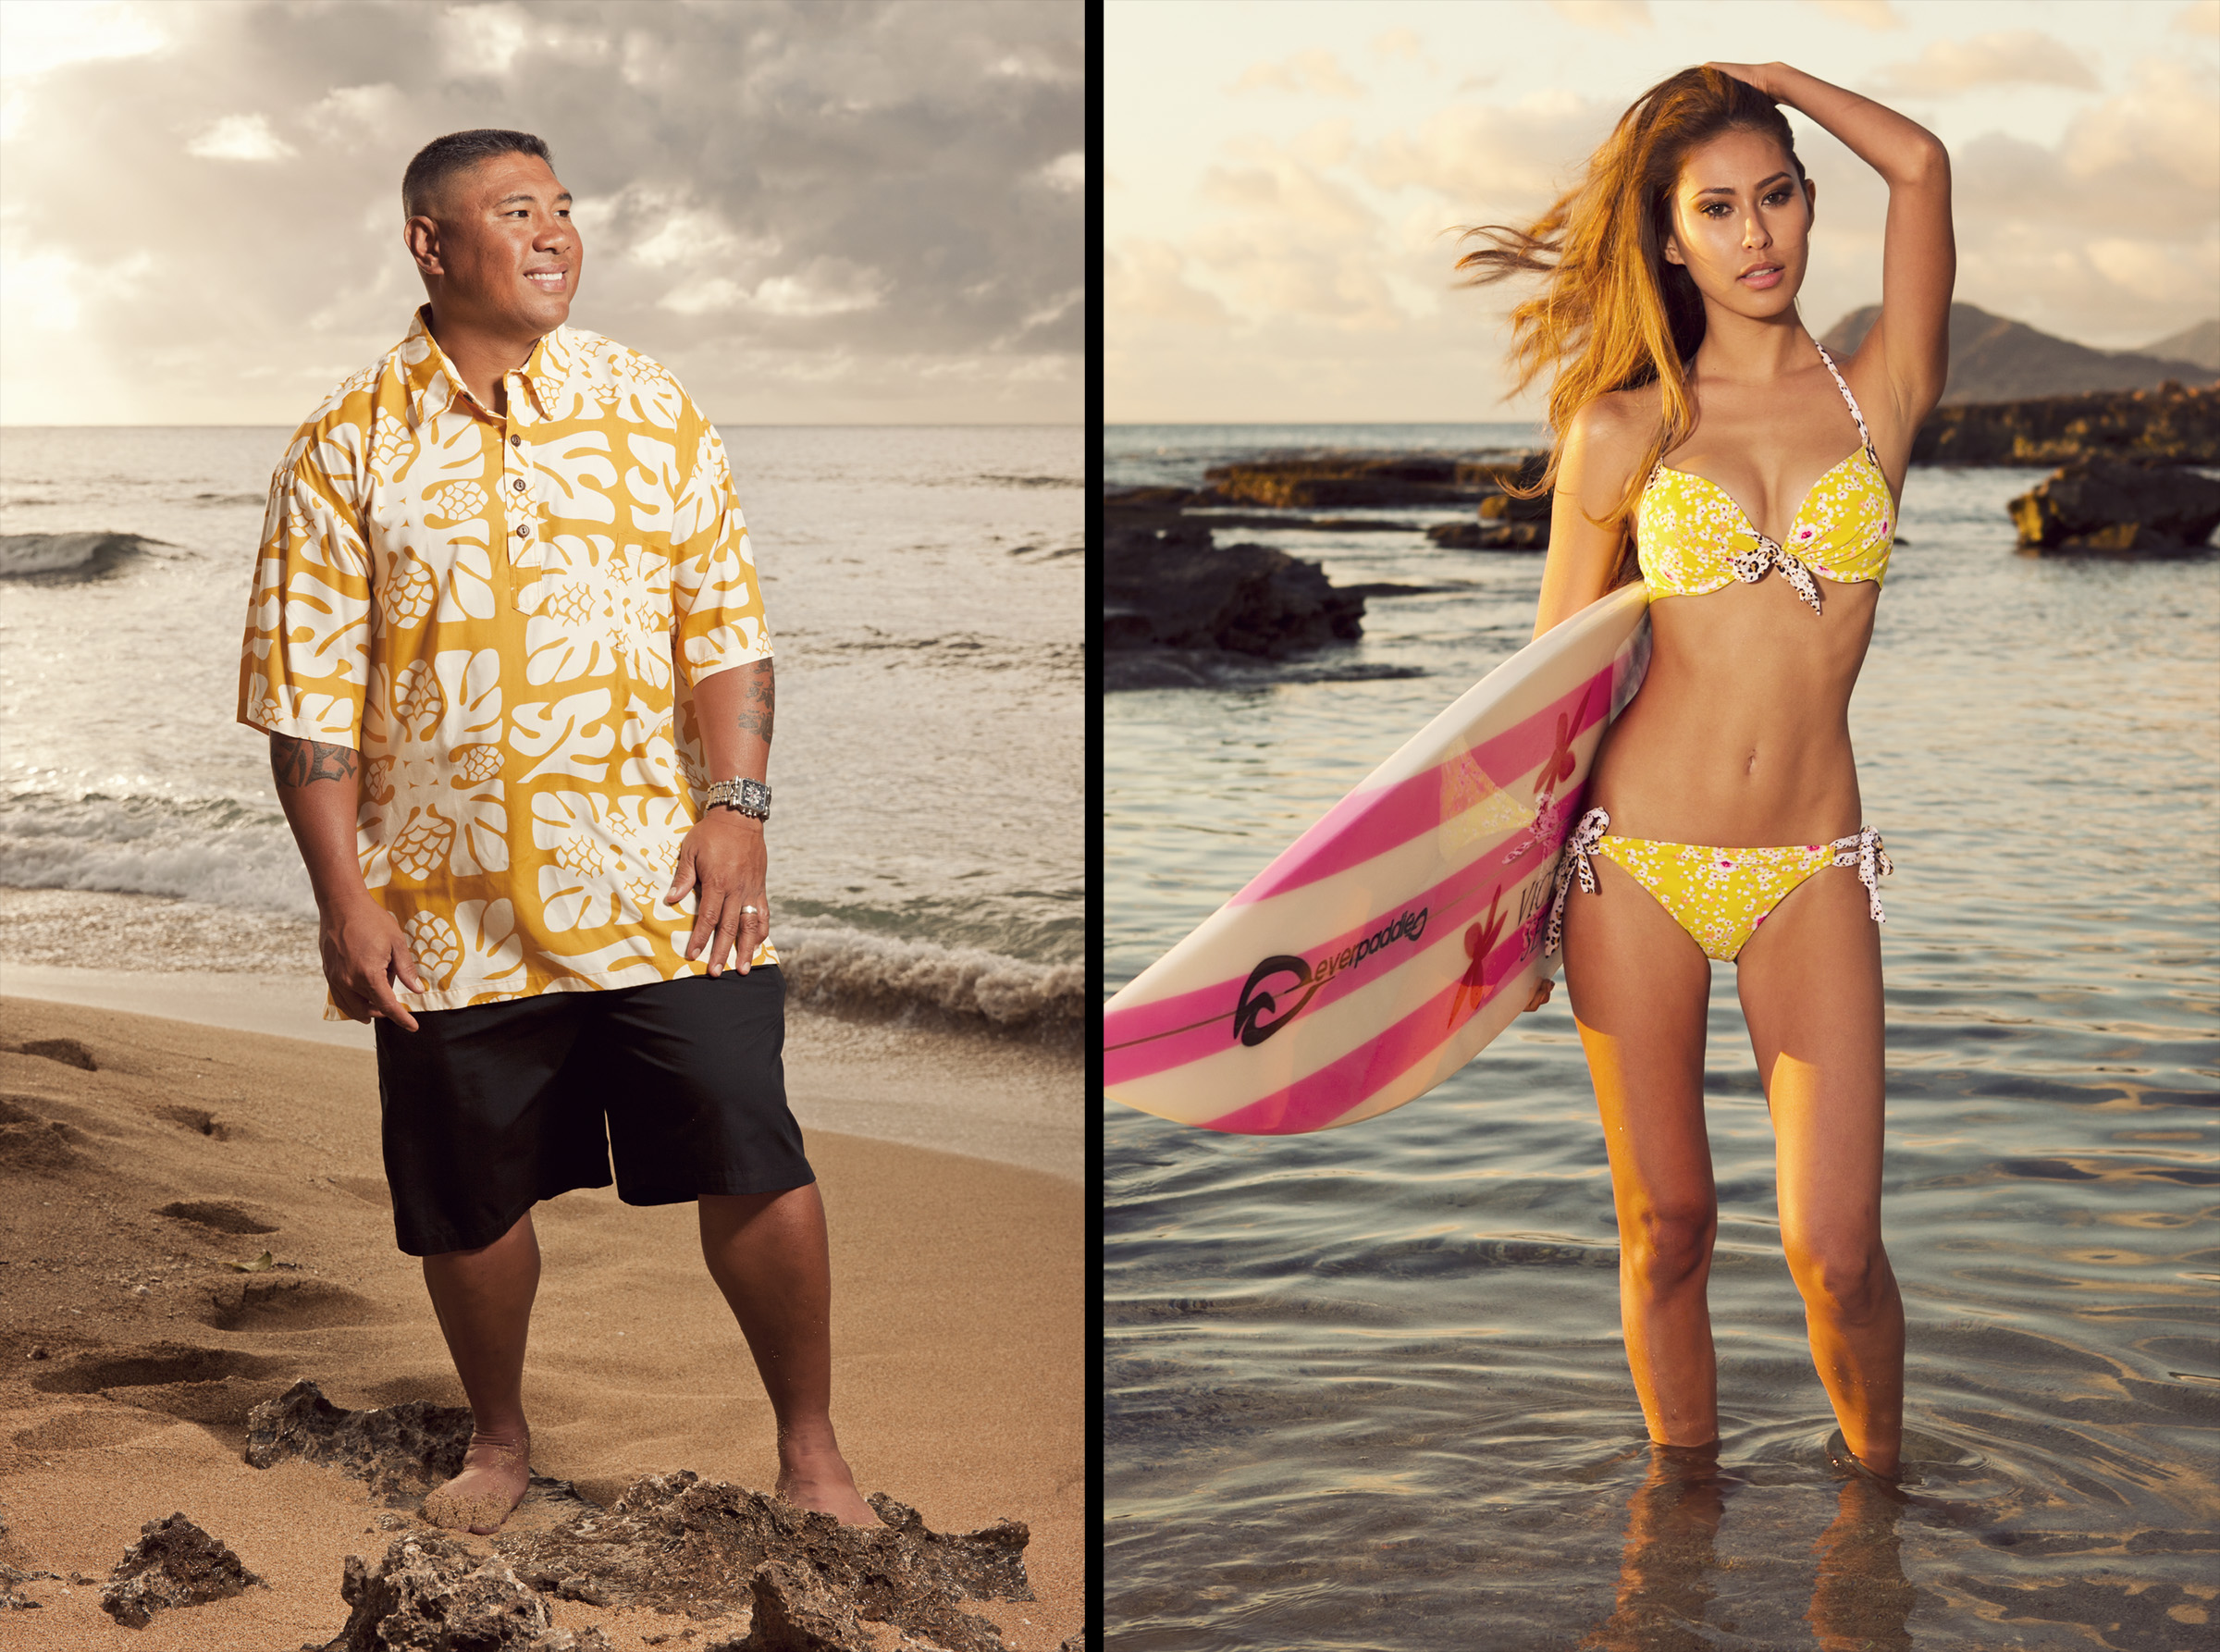 Ex professional baseball player Bennie Agbayani for Major League Baseball.  Model Daniella Abe for Hawaii Five 0.